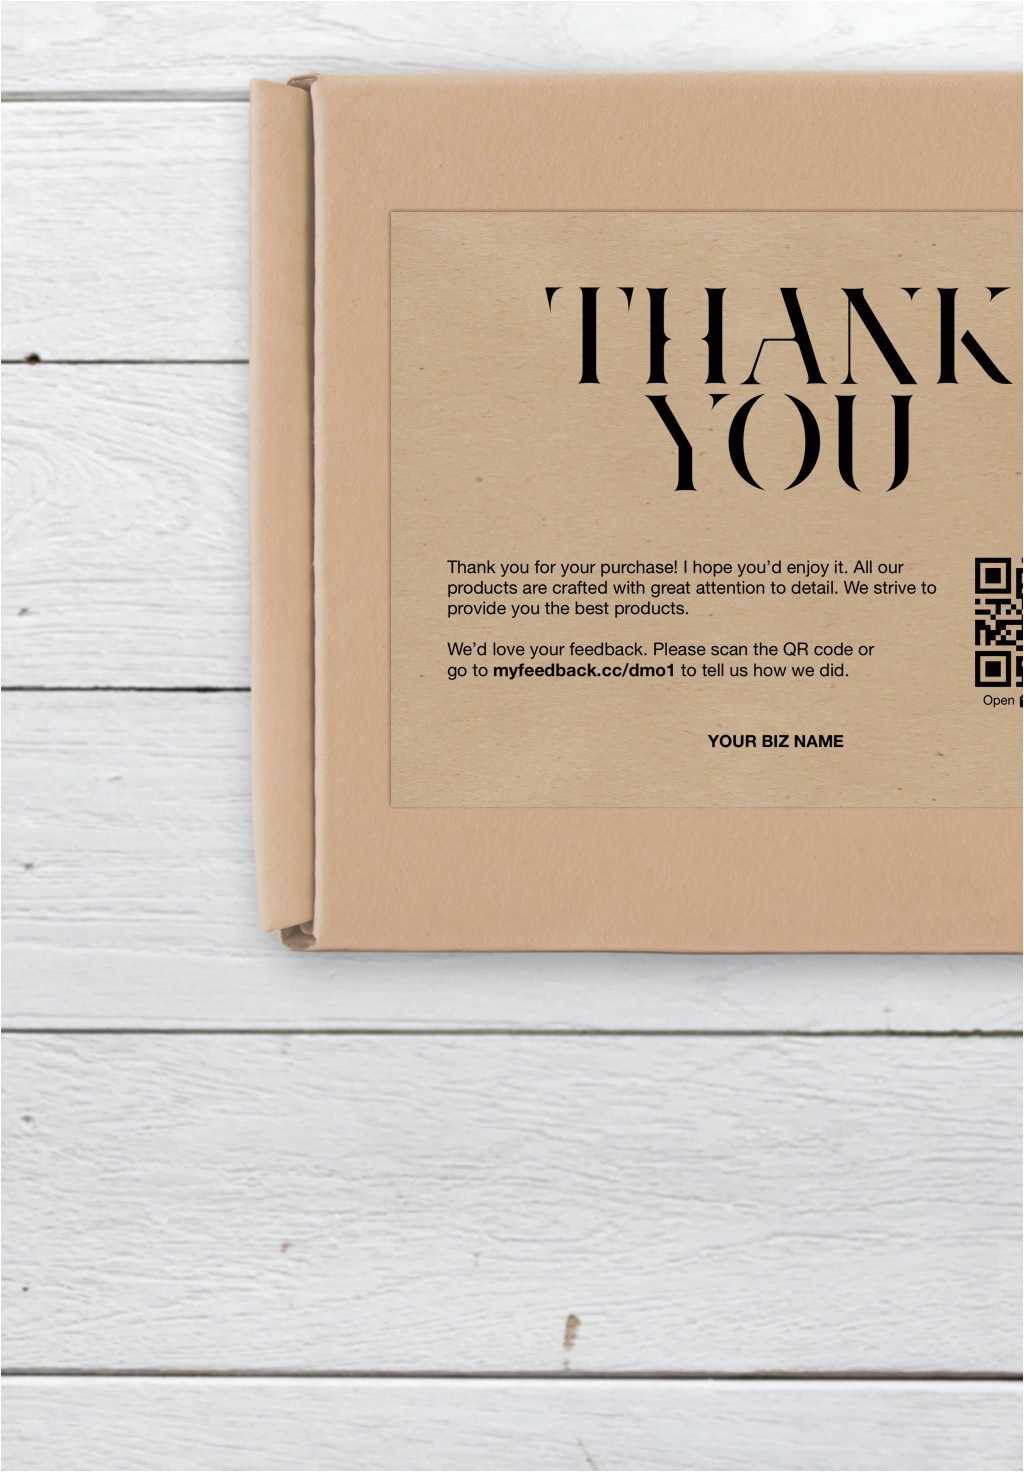 Thank You Card for Your Purchase Business Thank You Card Thank You for Your Purchase